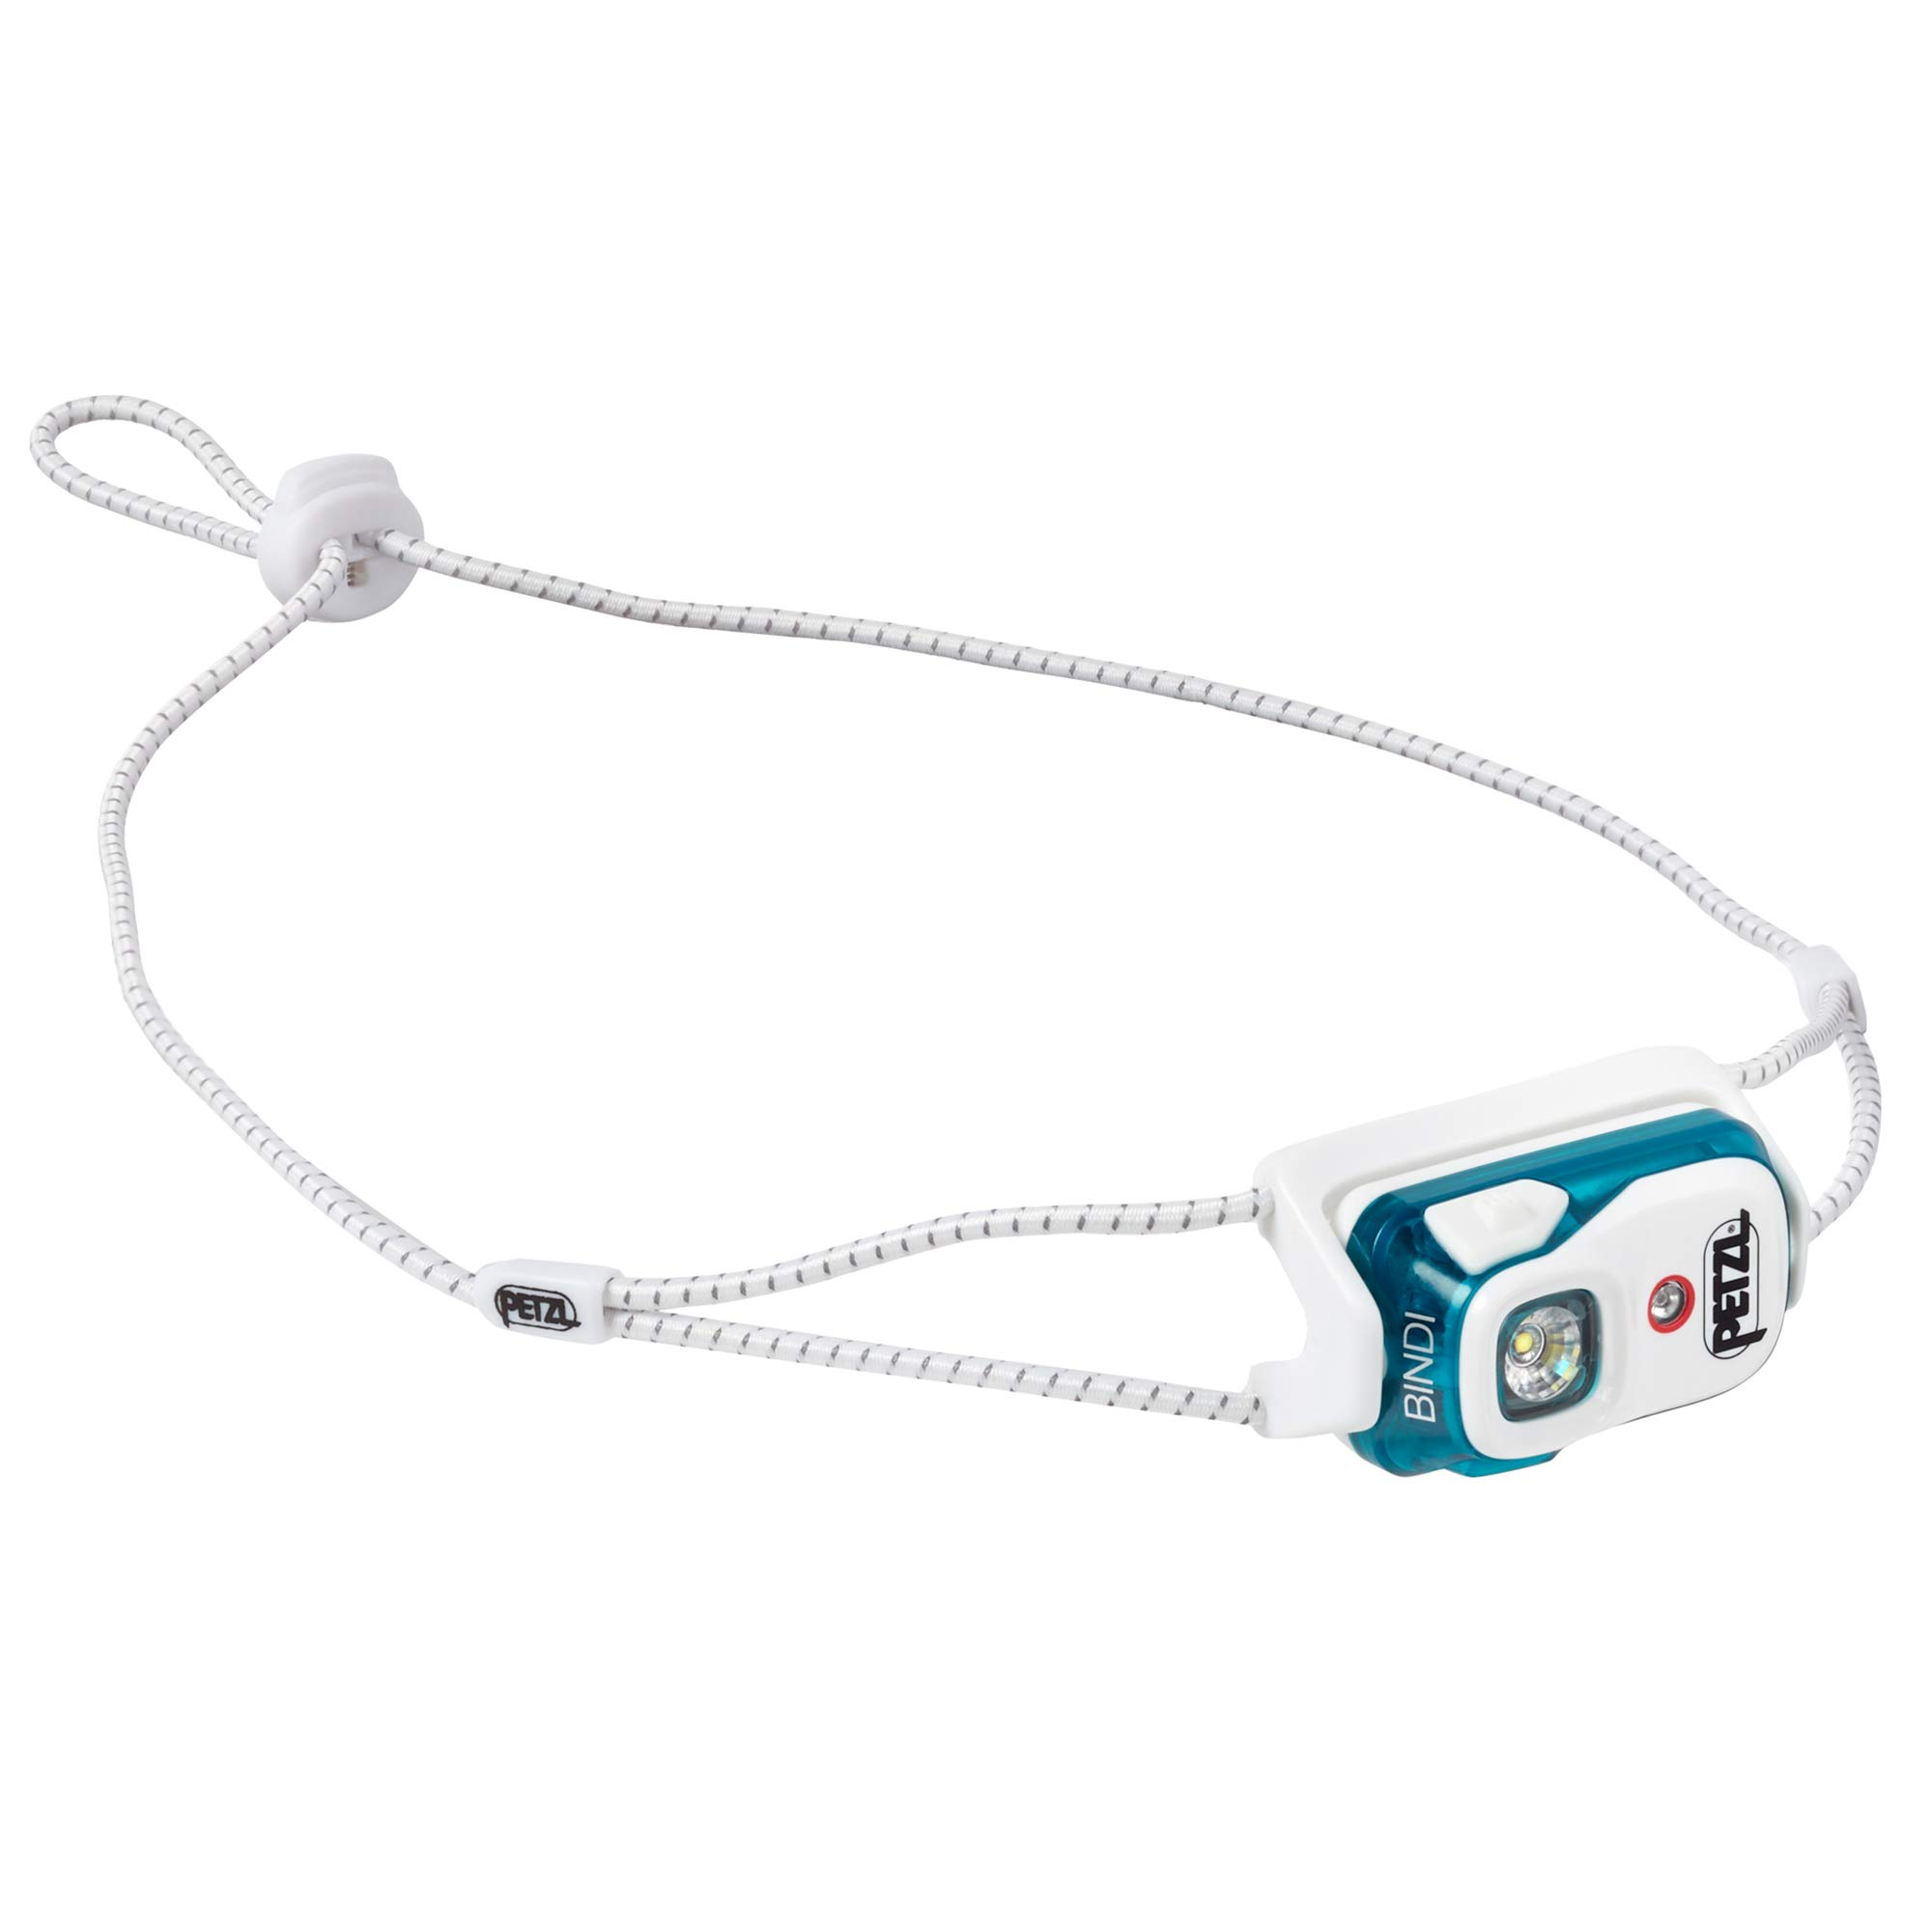 PETZL - Bindi, 200 Lumens, Ultralight, Rechargeable, and Compact Headlamp for Urban Running, Emerald by PETZL